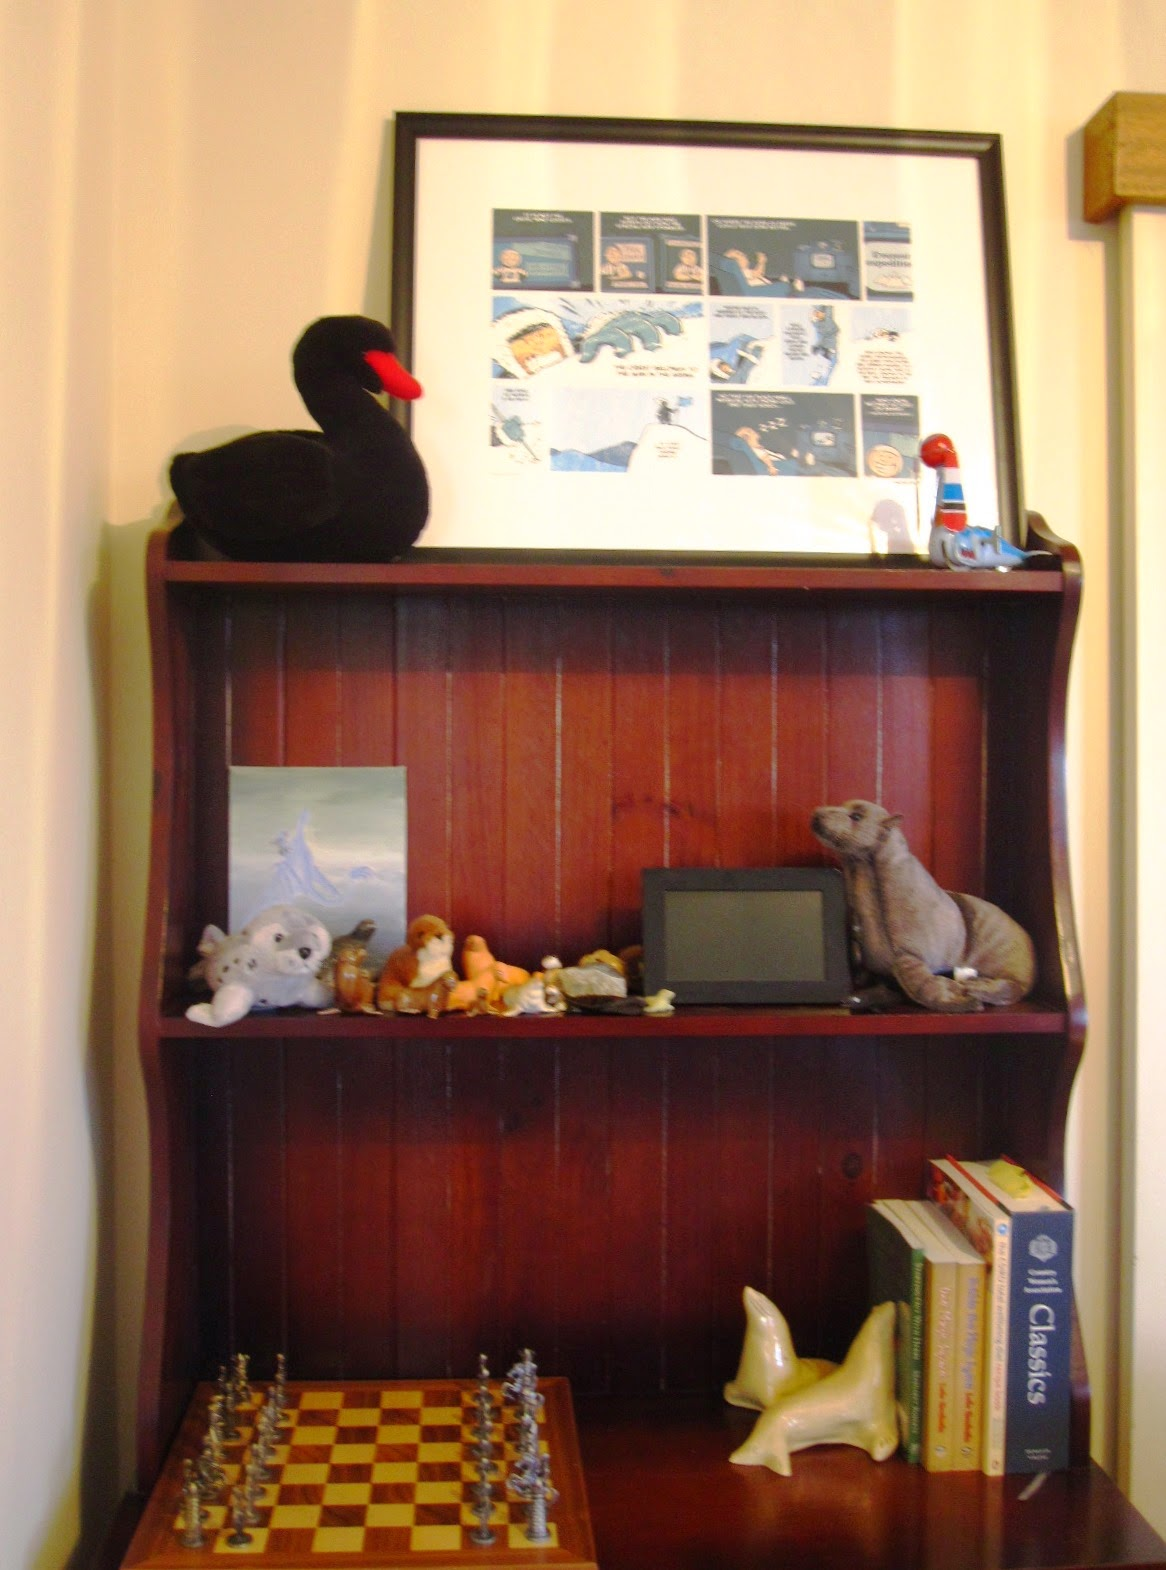 A small hutch dresser displaying a collection of seals of ciffernt materials (stuffed toys, stone, shell) and an ornate chess set.